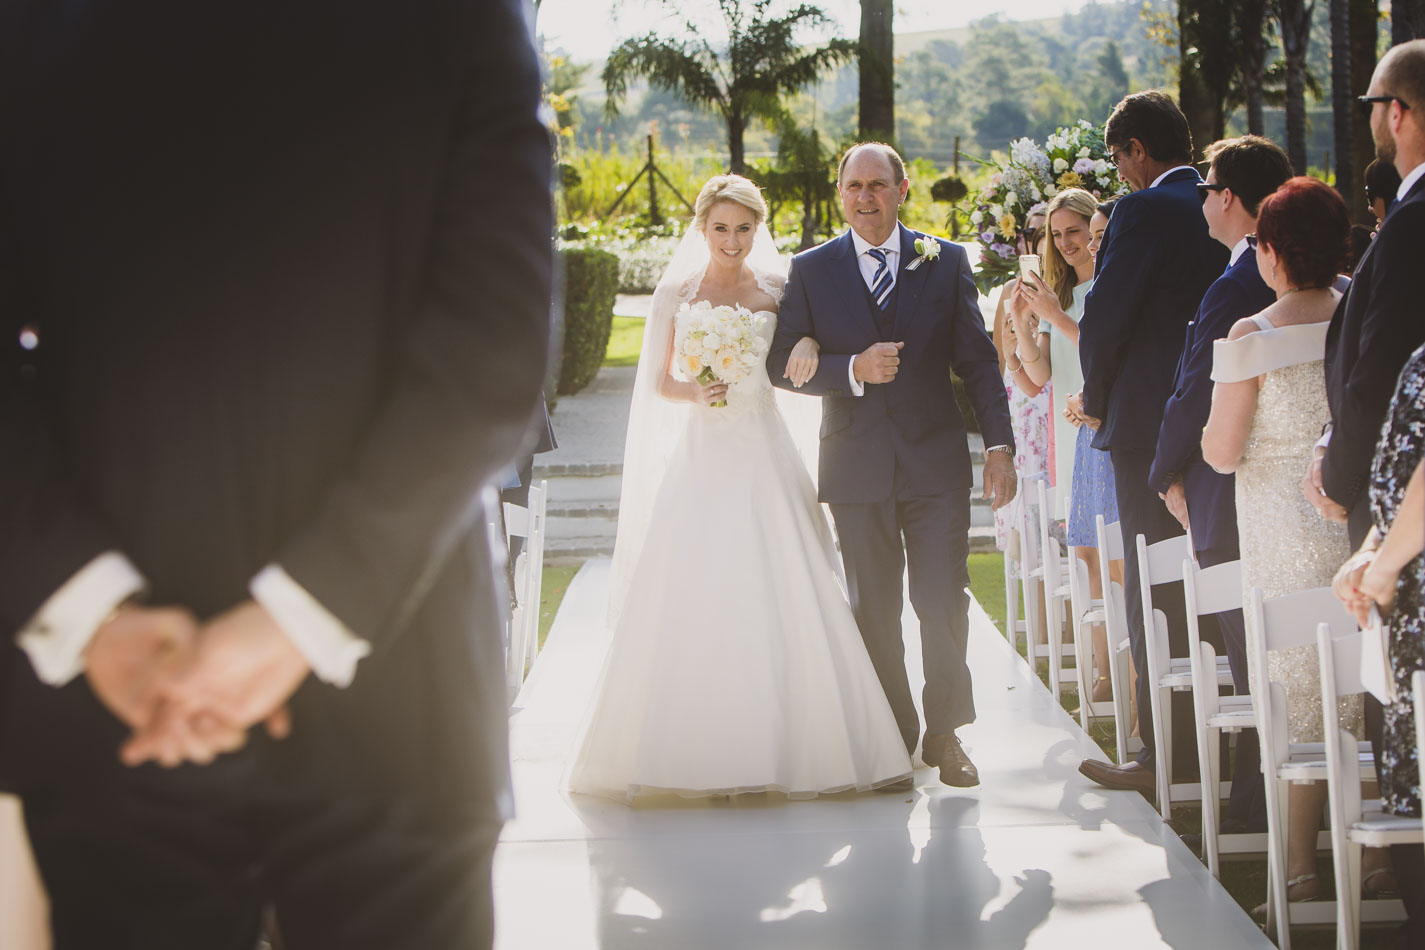 CATHERINE AND JOHN'S BEAUTIFUL WEDDING DAY